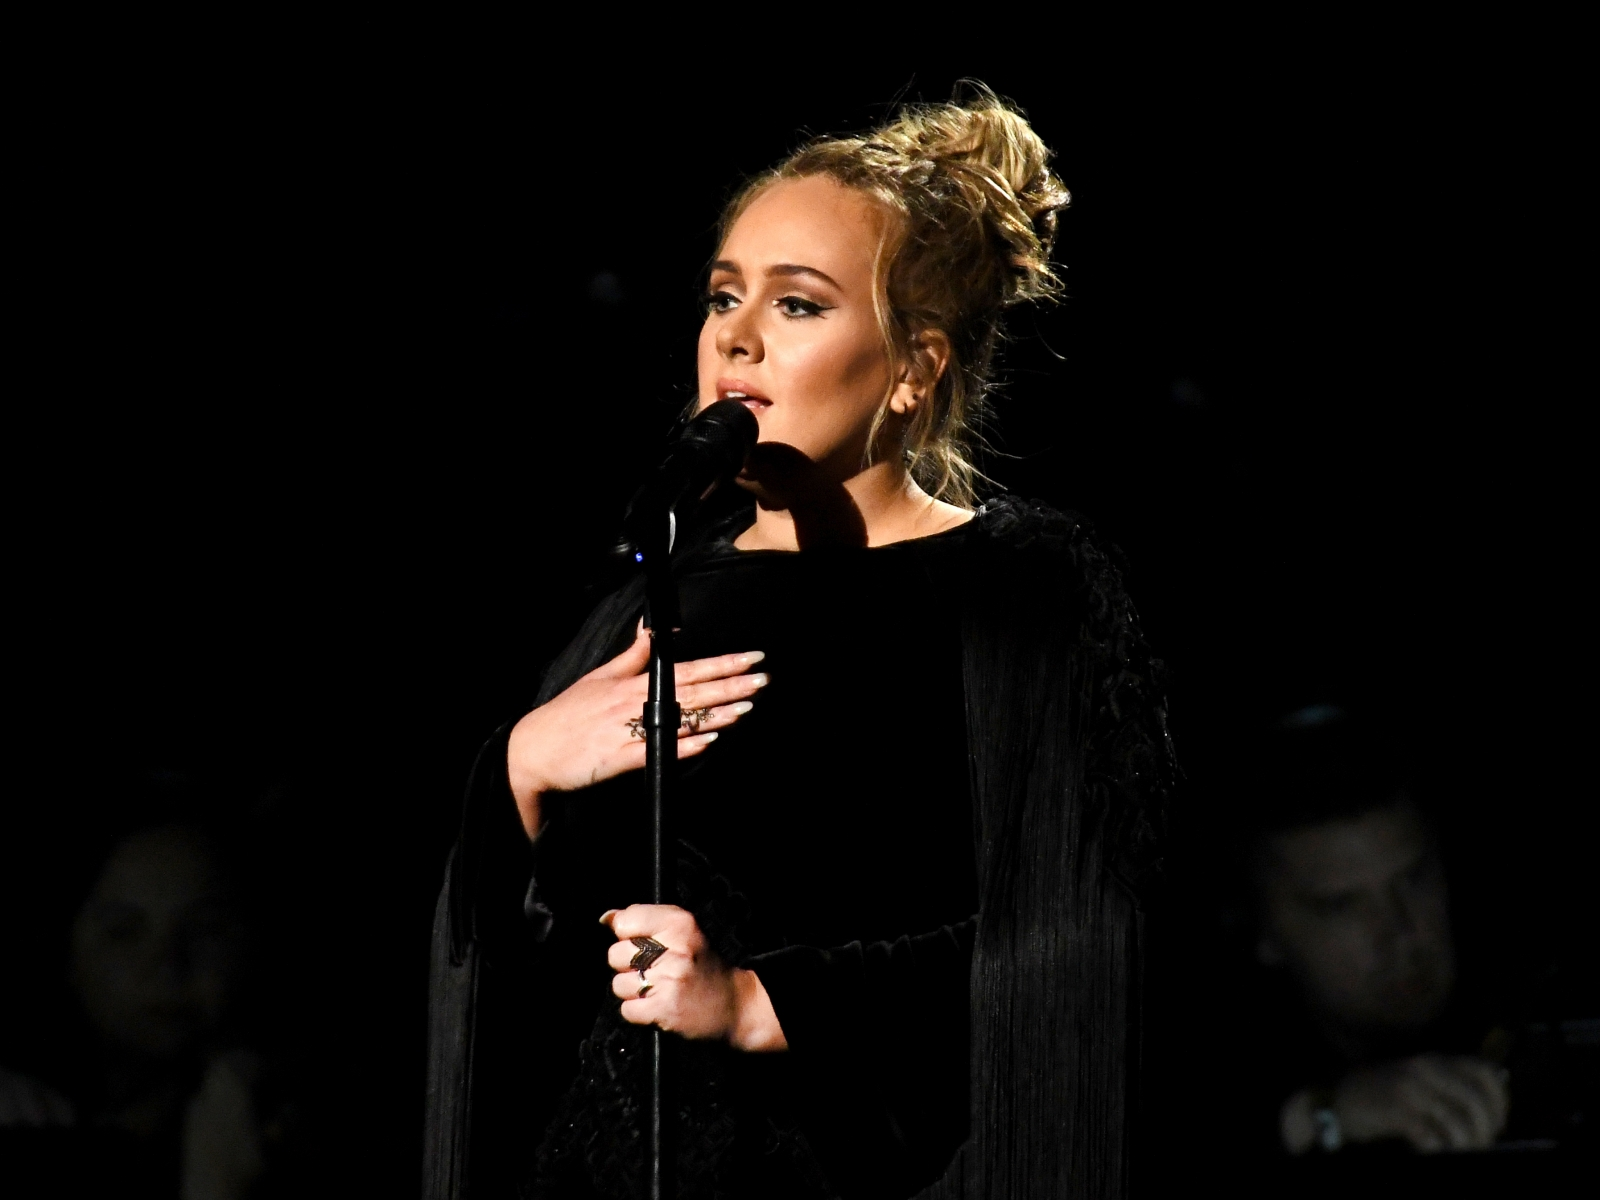 Adele performing